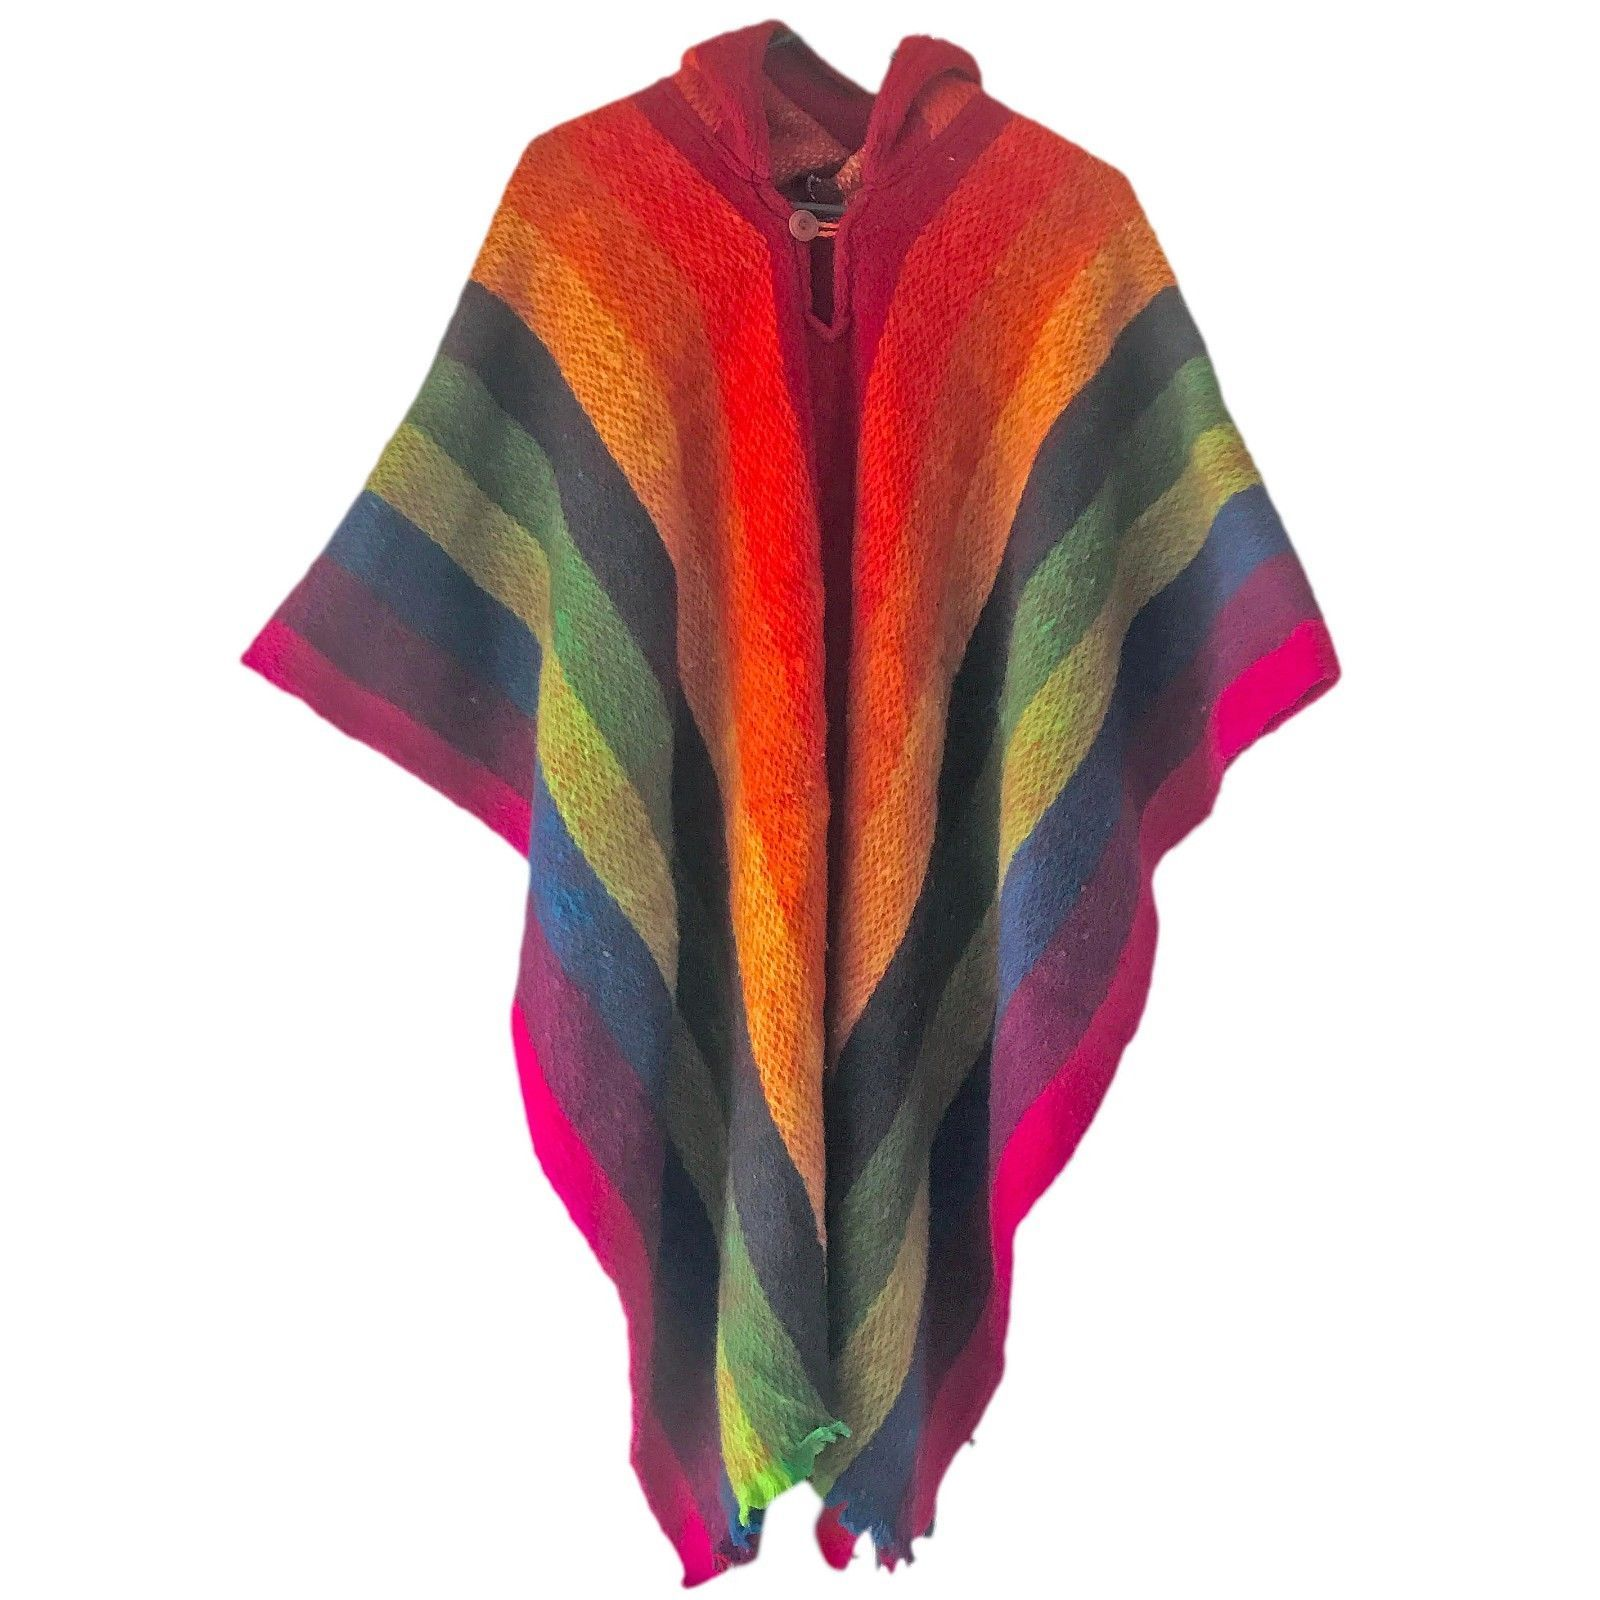 e7956e51e HANDWOVEN LLAMA WOOL RAINBOW JEDI MENS WOMANS UNISEX HOODED CAPE ...